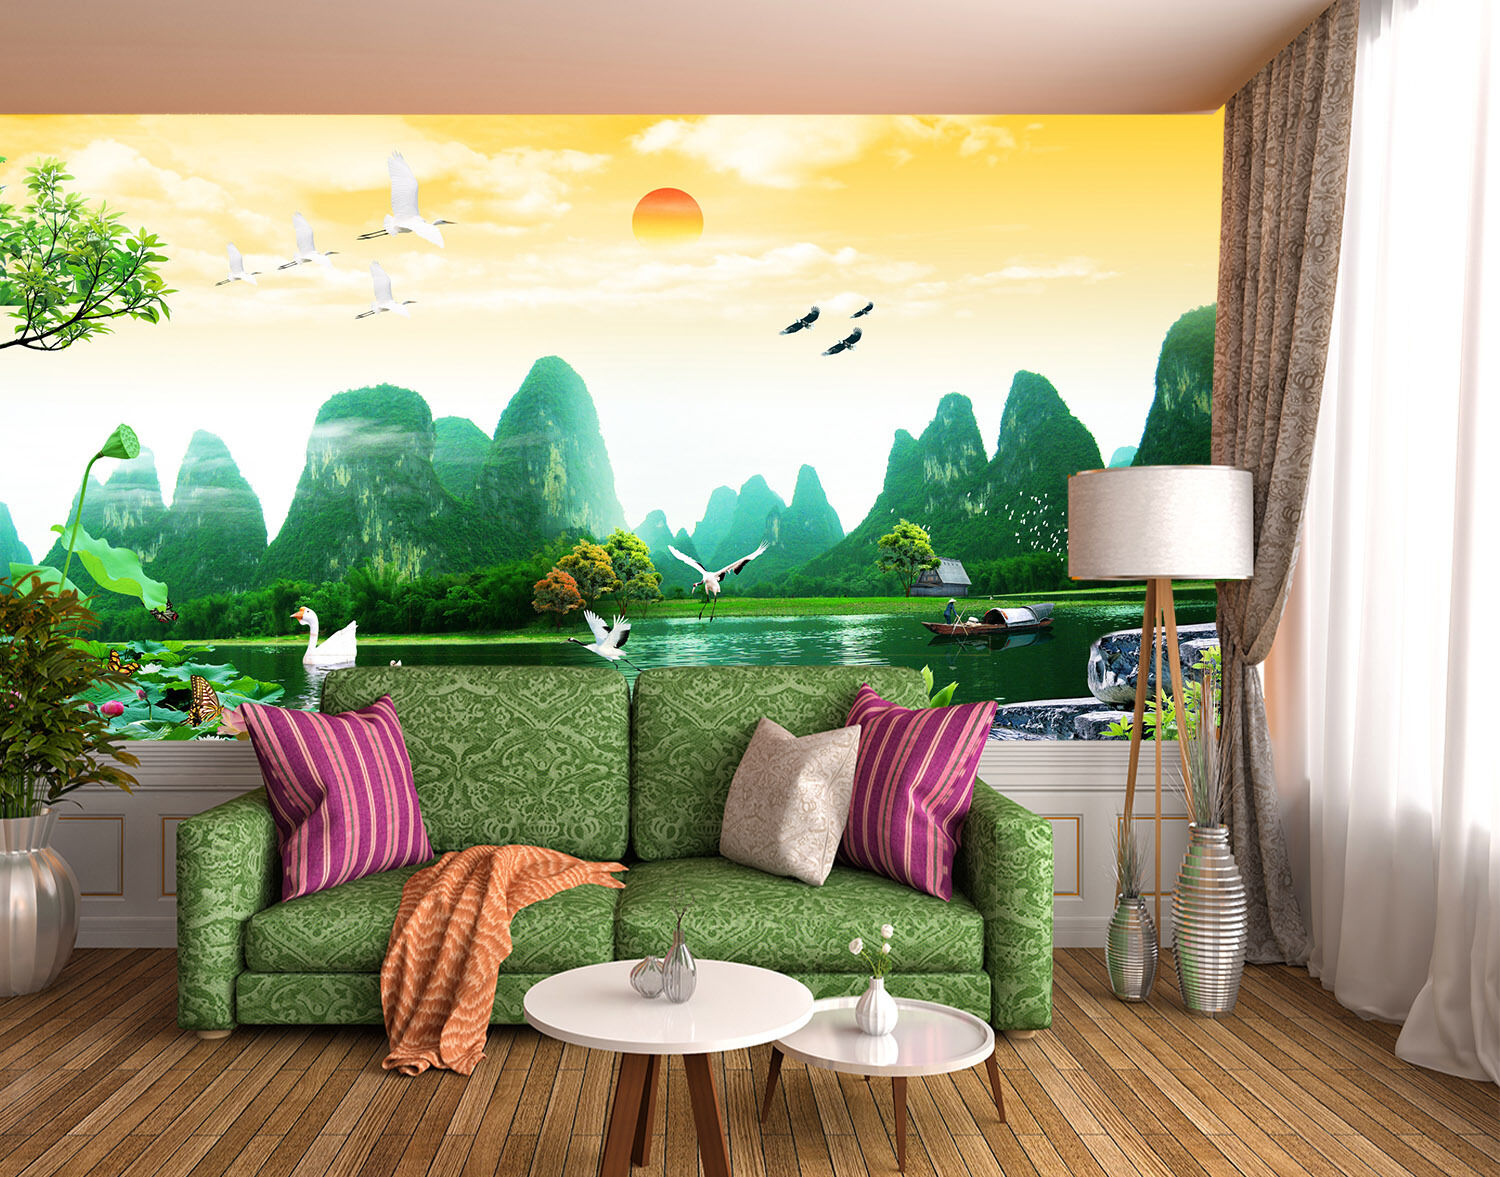 3D Beautiful Scenery 905 Paper Wall Print Wall Decal Wall Deco Indoor Murals